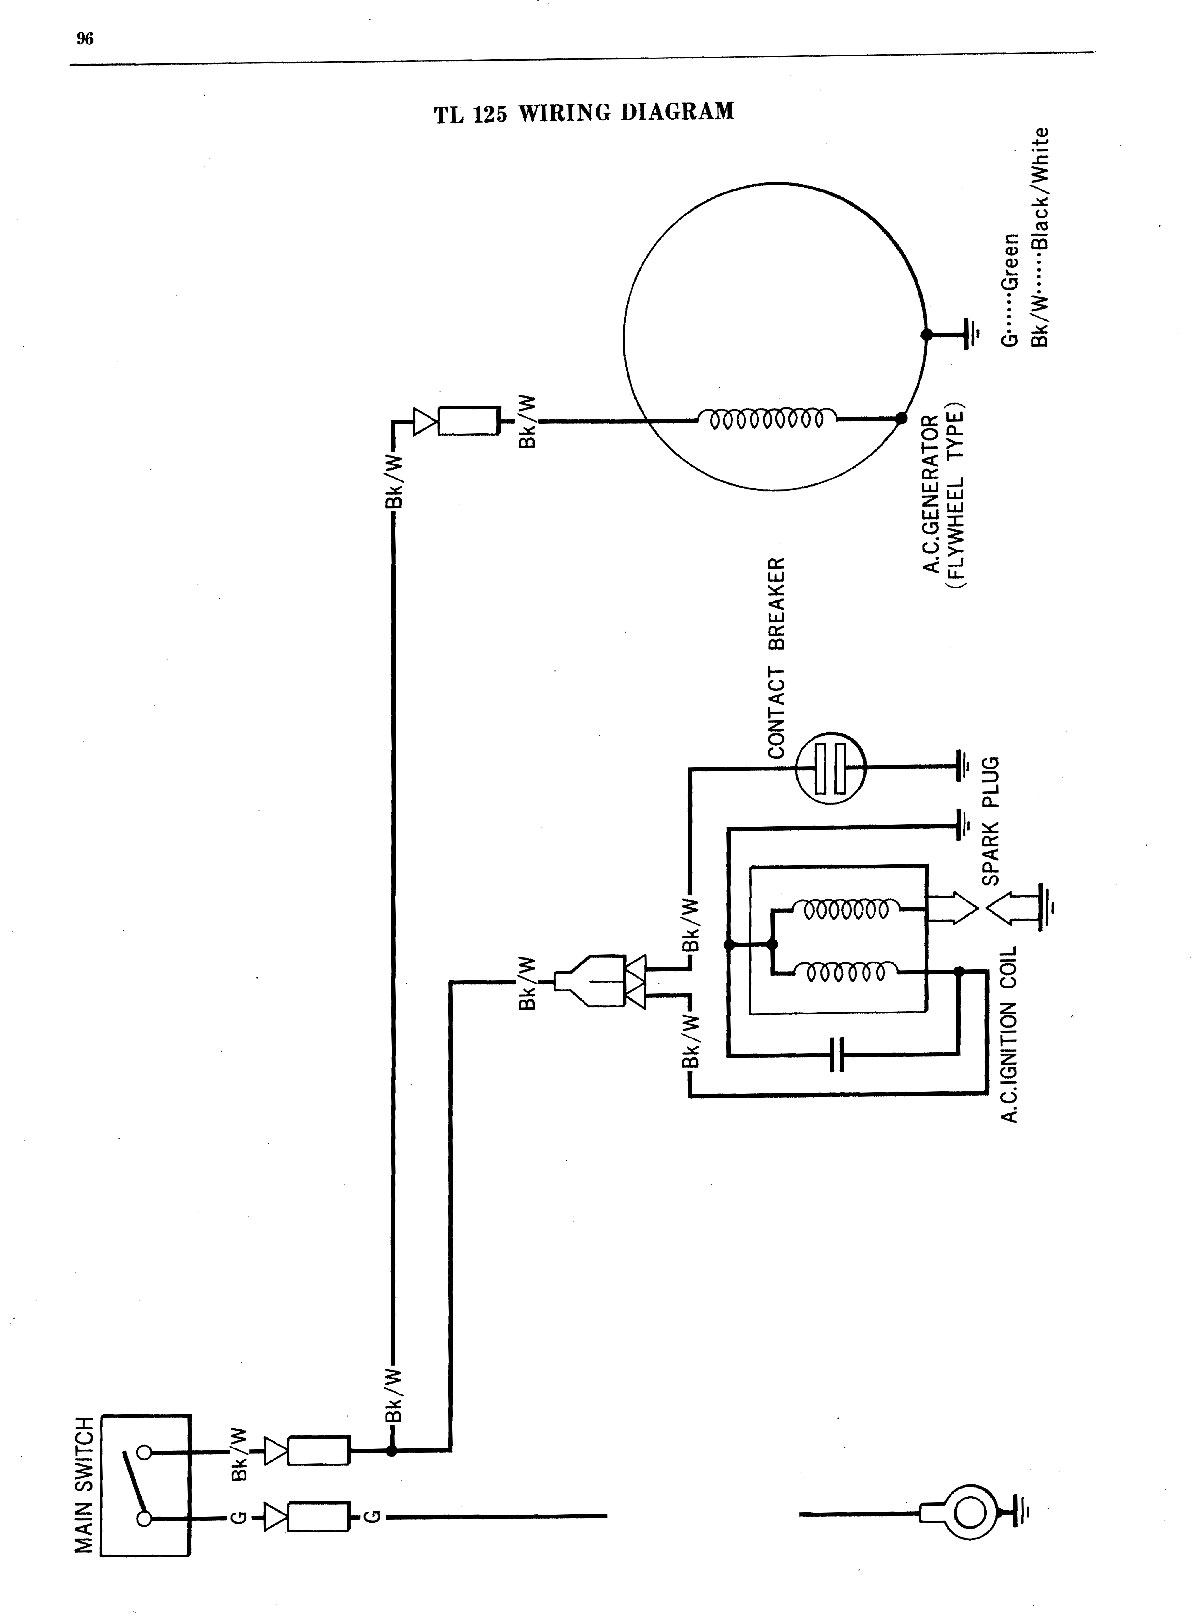 goldwing 1200 wiring diagram single pole switch 1986 honda get free image about